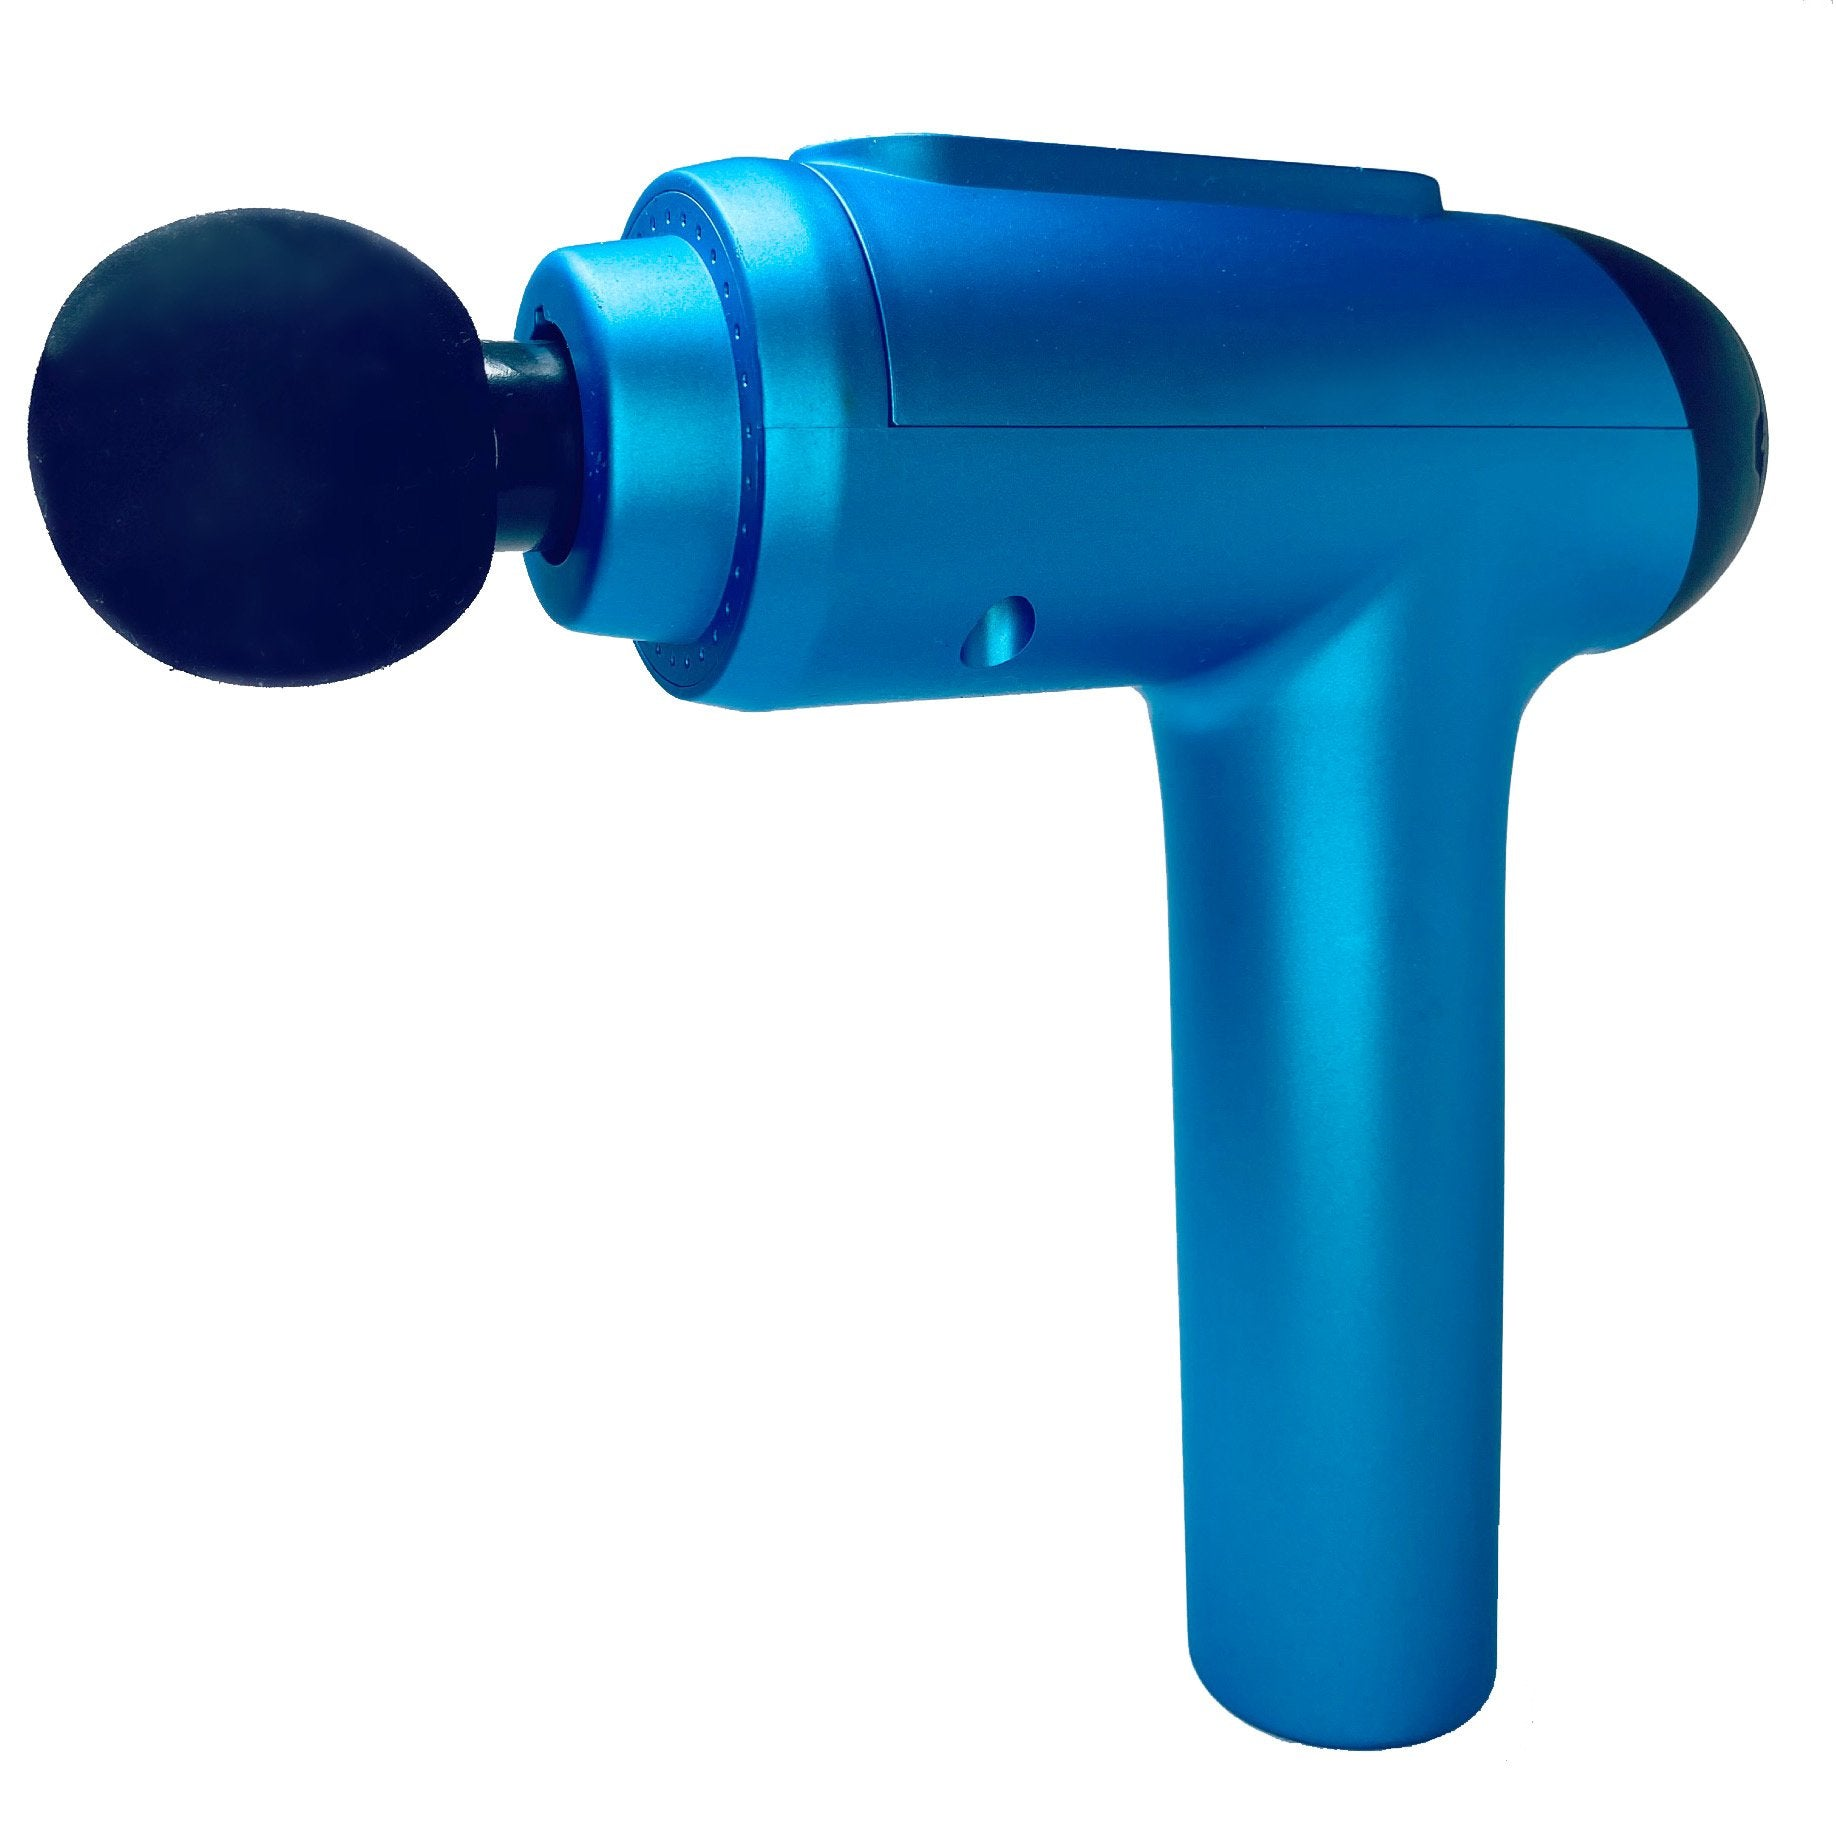 The Apollo 2.0 Massage & Relaxation Gun (In Blue)